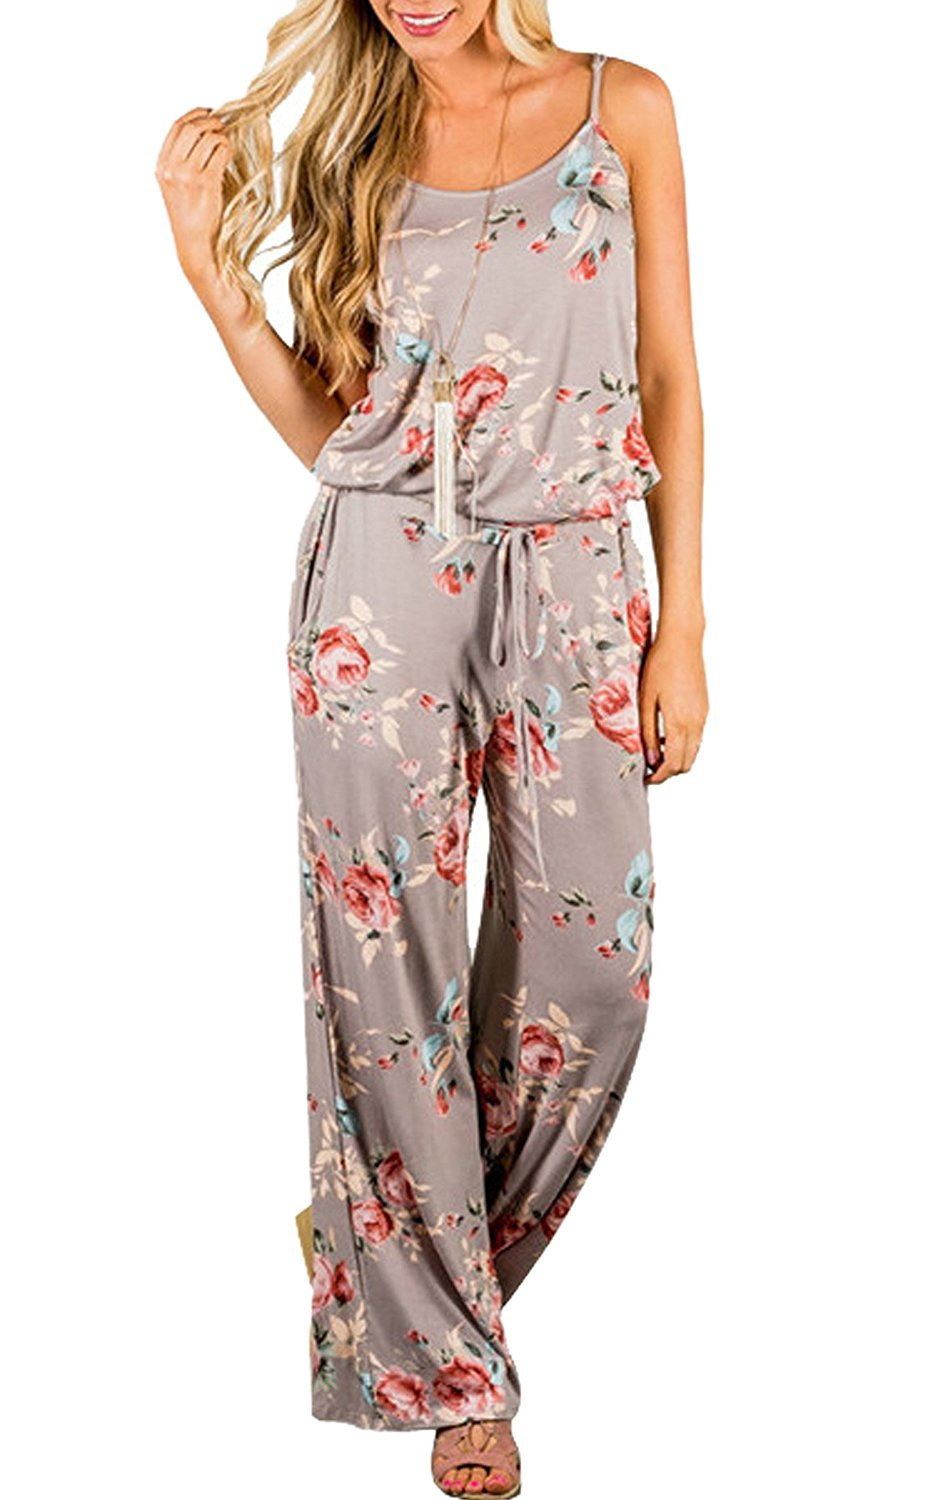 ElfZ Women's Summer Beach Bridesmaid Jumpsuits Floral Printed Spaghetti Strap Sleeveless Casual Jumpsuit Rompers 0444 Khaki Medium